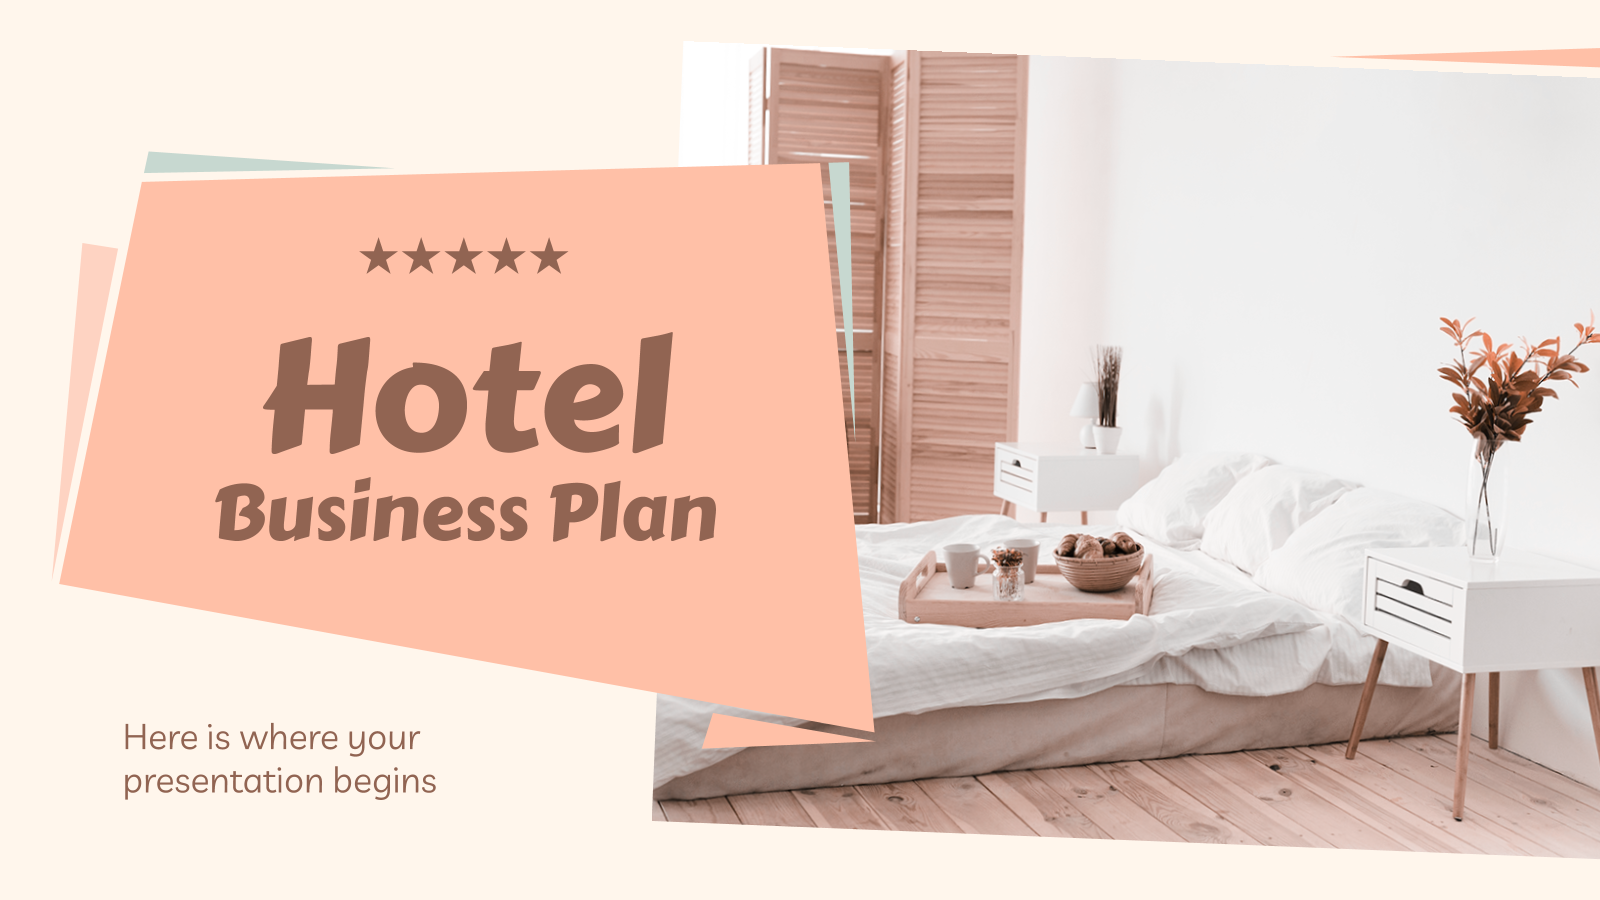 Hotel Business Plan presentation template